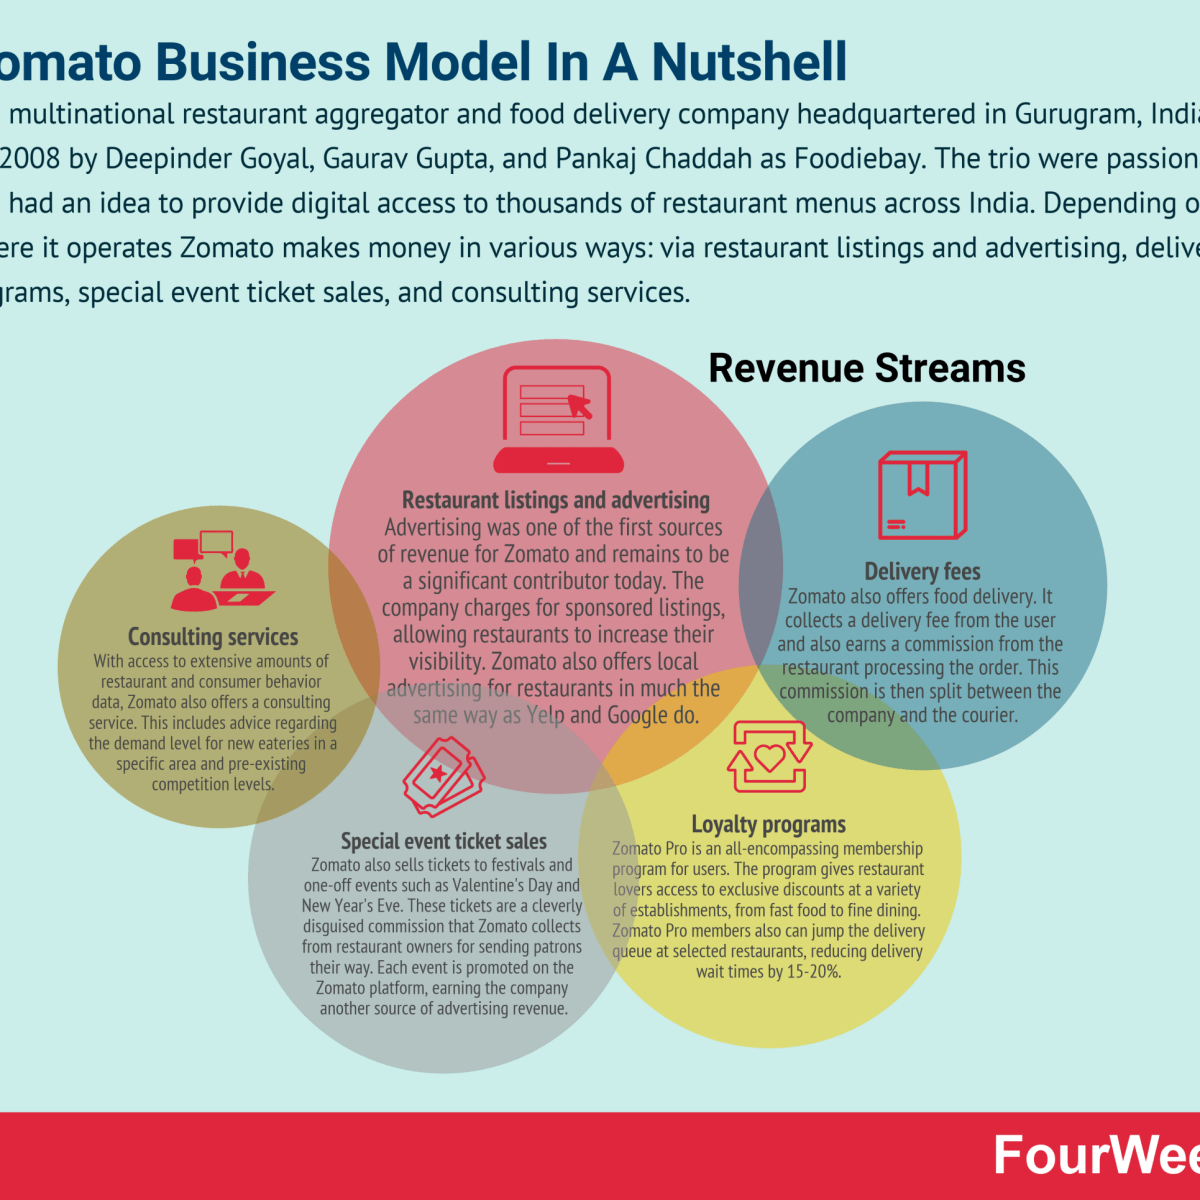 How Does Zomato Make Money? The Zomato Business Model In A Nutshell